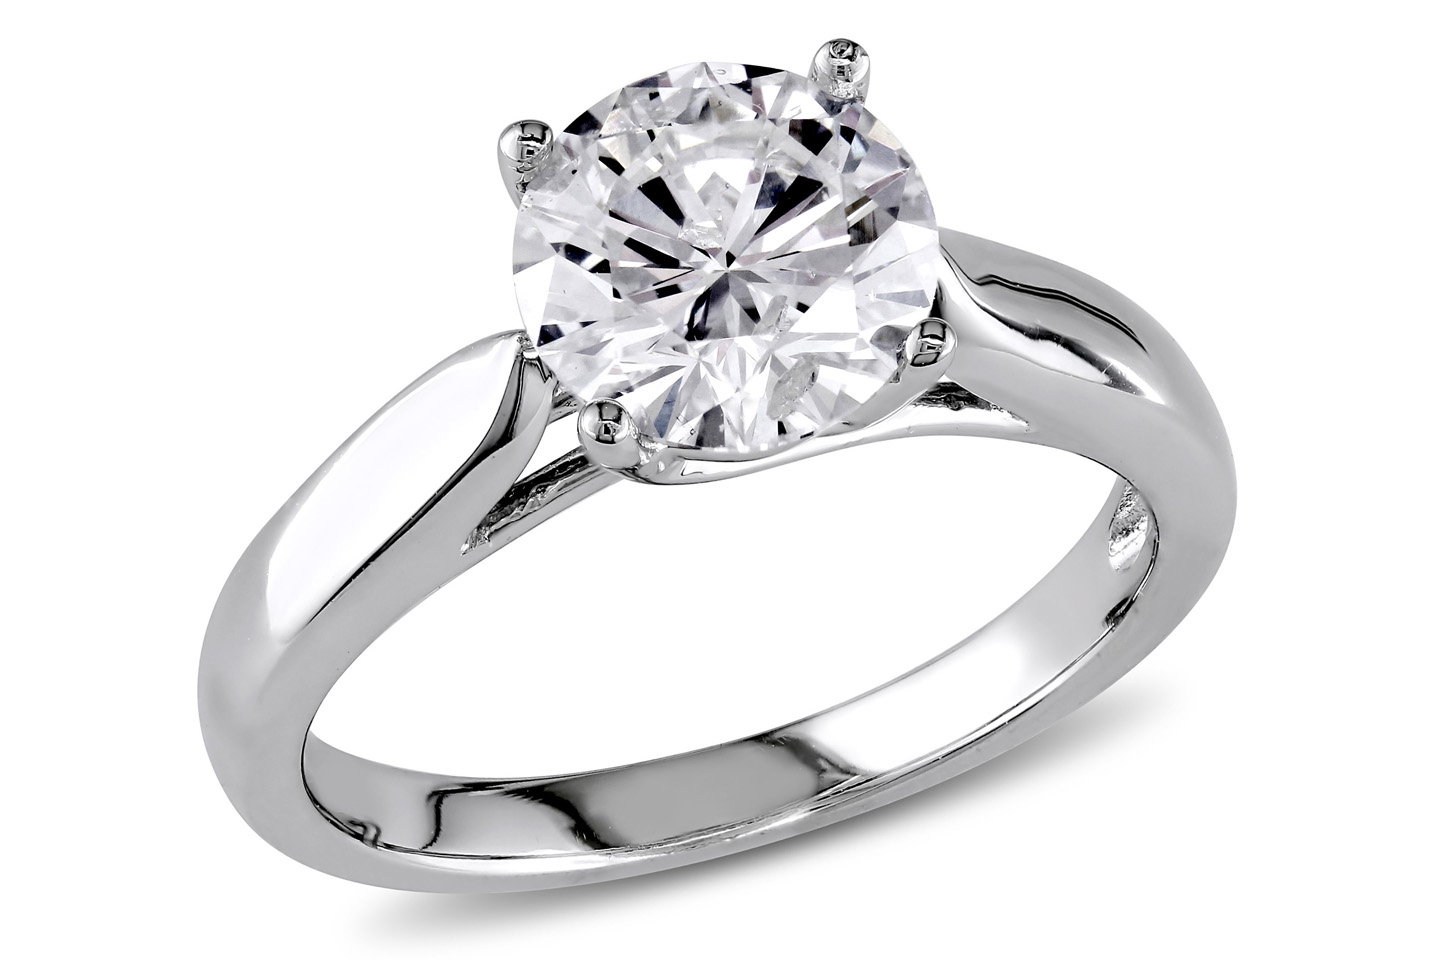 divorce higher think jewellery big article expensive wedding linked engagement rates image rings to ideafeed ring